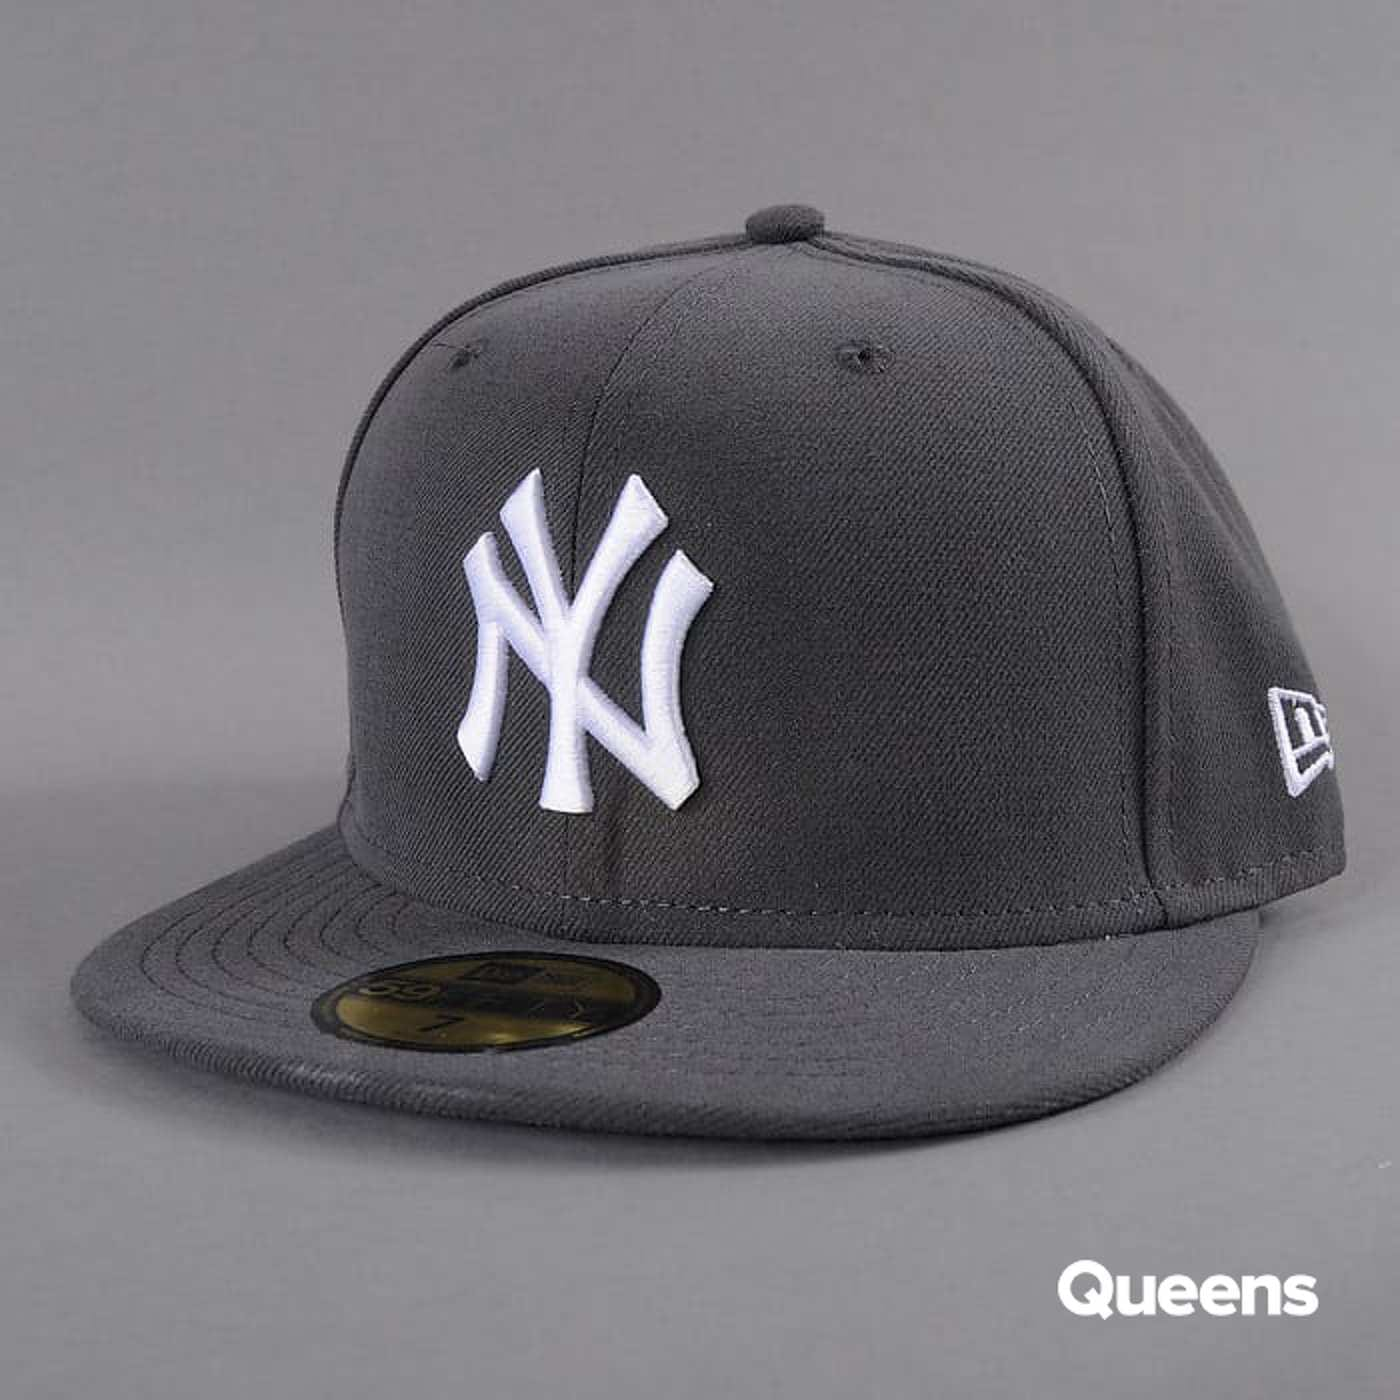 New Era MLB Basic NY dark gray / white